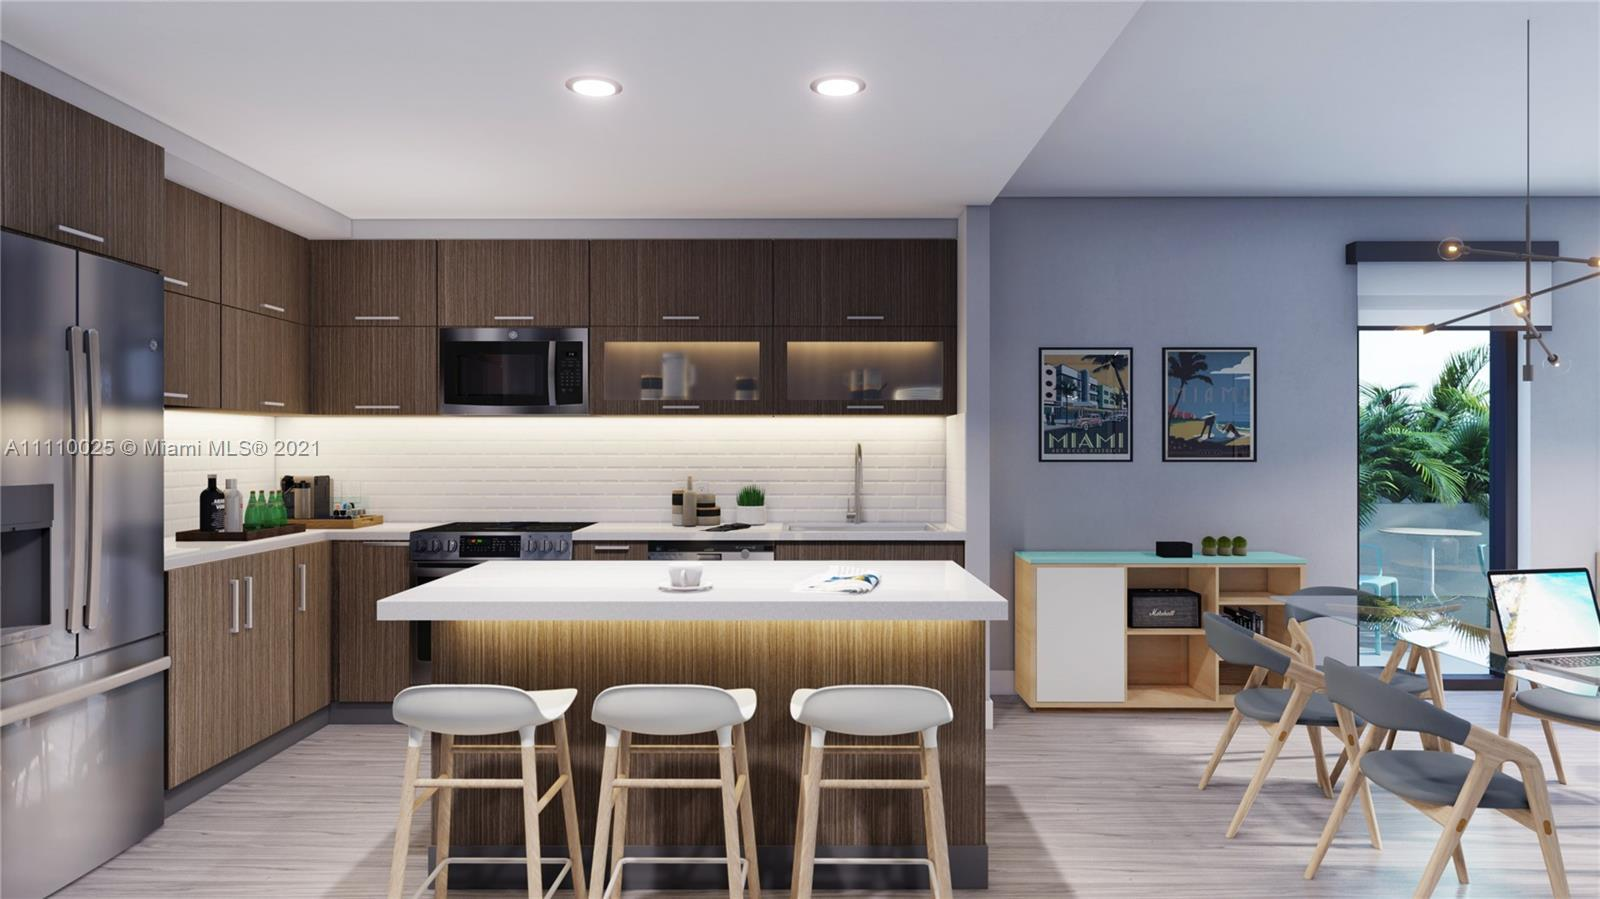 Aesthetic Apartments is a new community development consisting of 22 modern apartments located in th